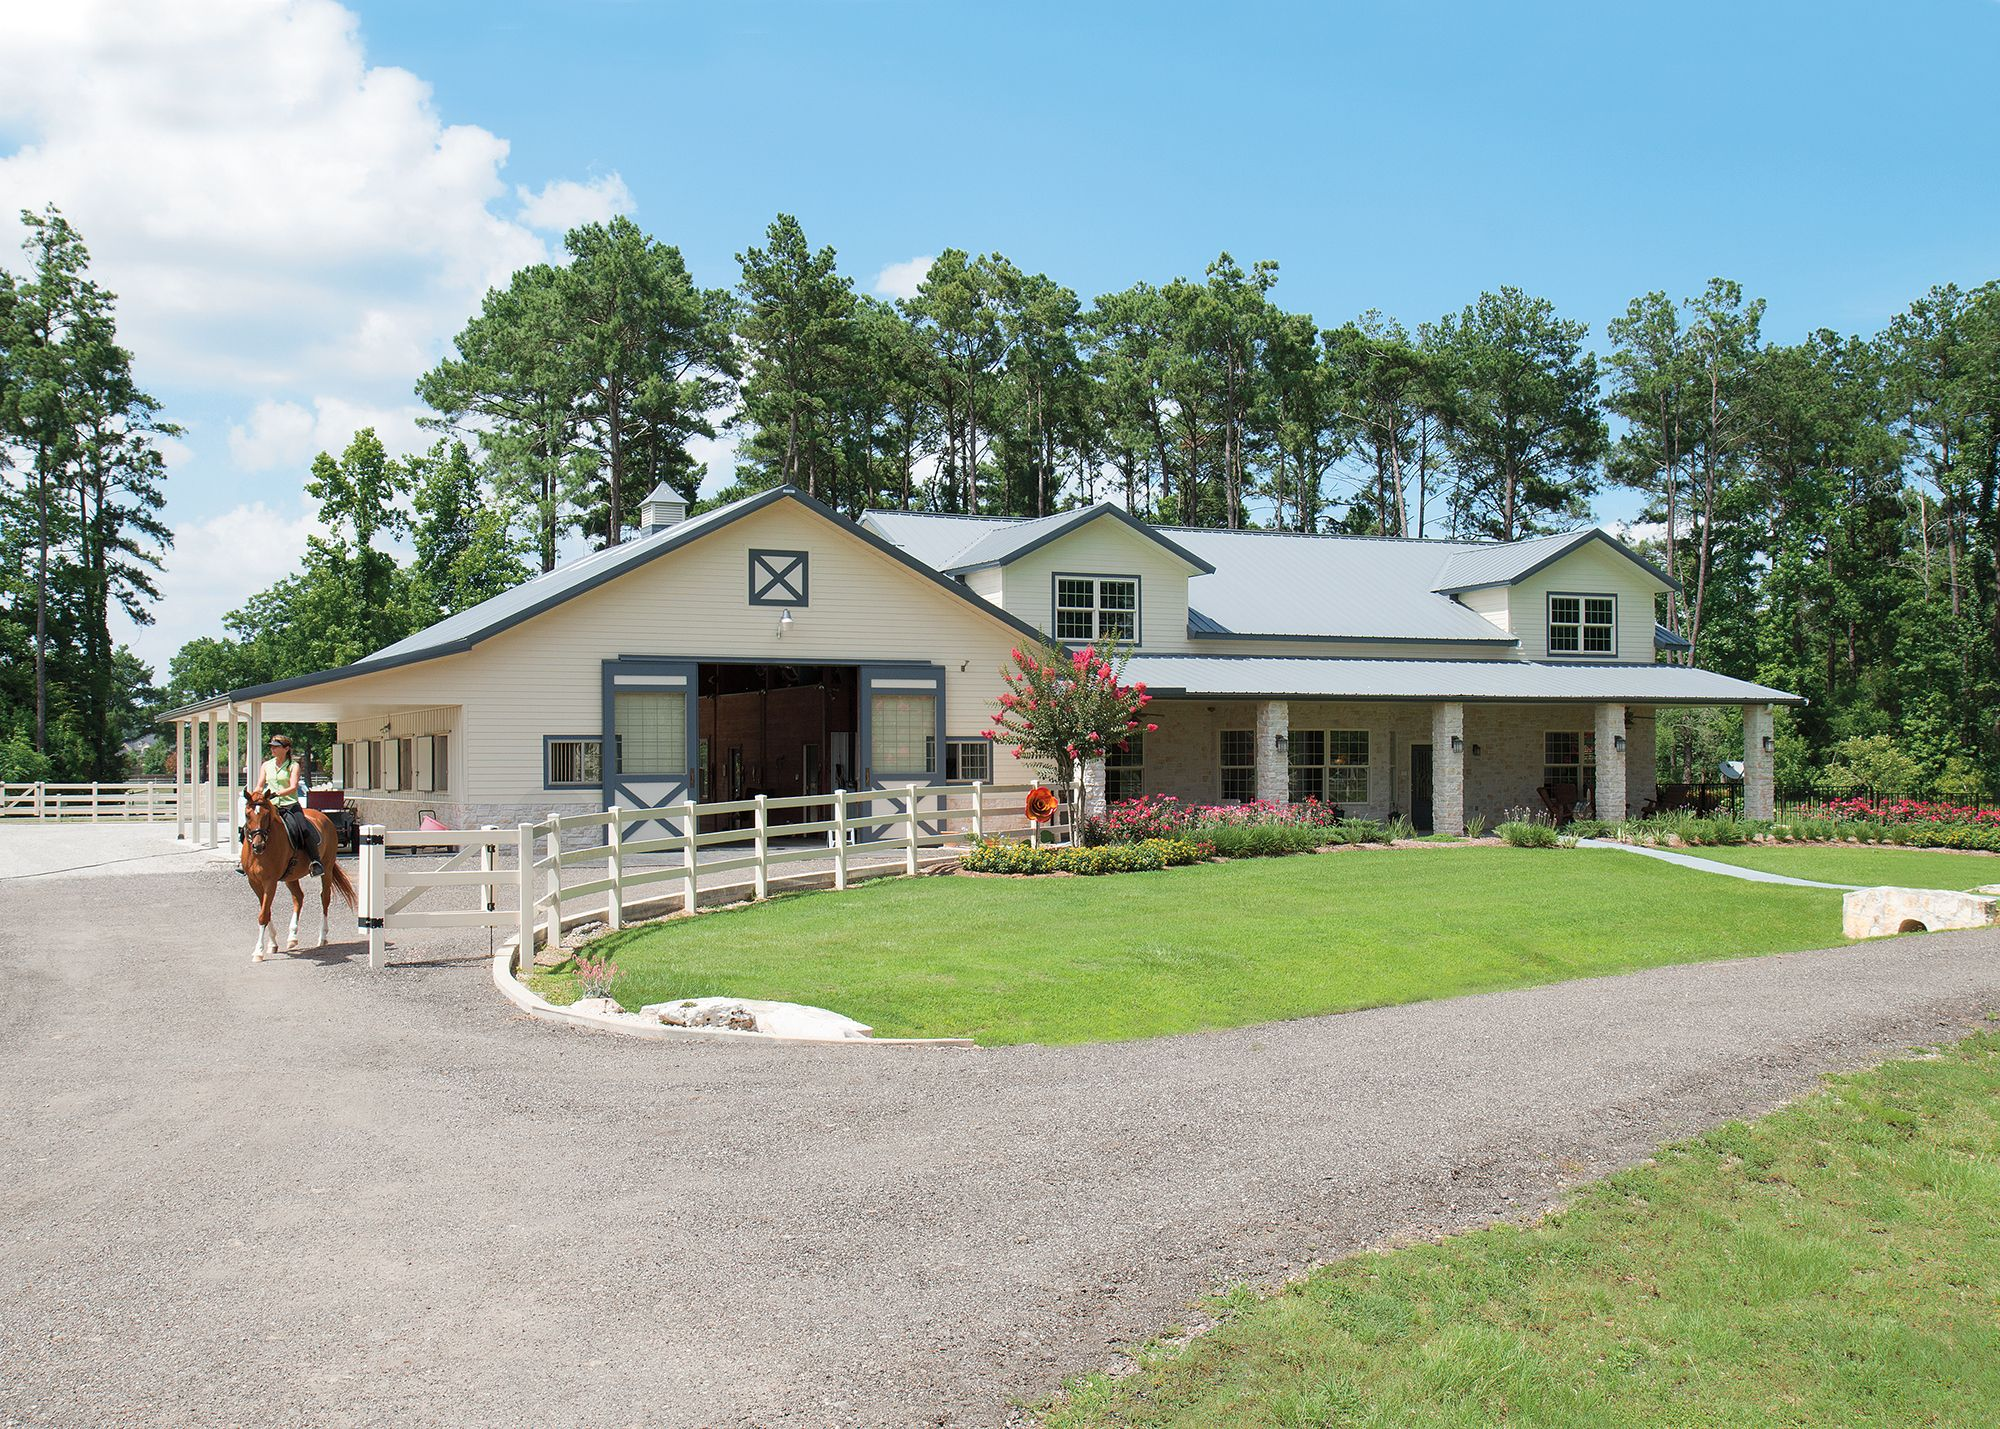 Morton Buildings Horse Barn With Attached Residence In Texas